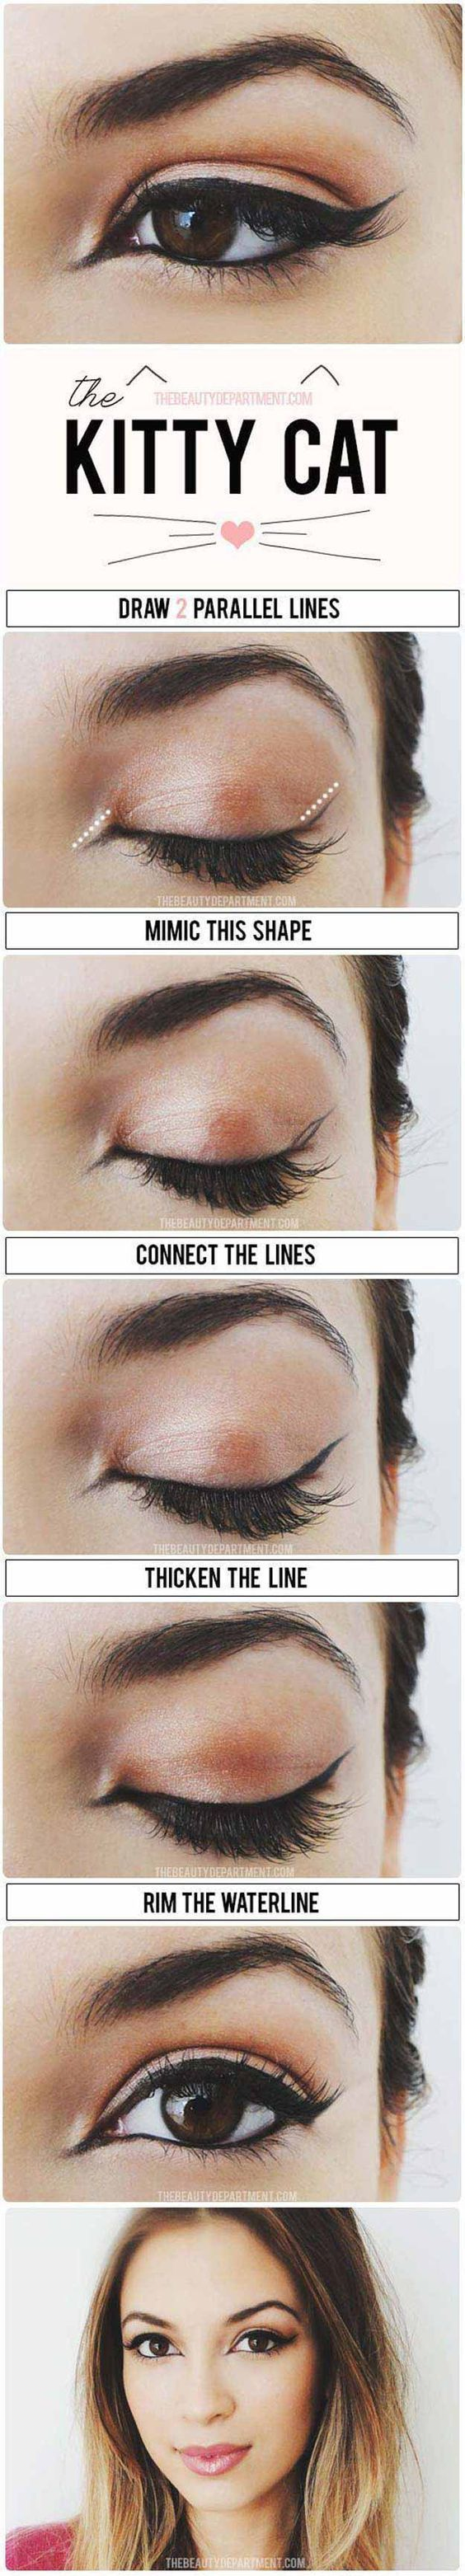 Winged Eyeliner Tutorials - The Cat Eye Stylized- Easy Step By Step Tutorials For Beginners and Hacks Using Tape and a Spoon, Liquid Liner, Thing Pencil Tricks and Awesome Guides for Hooded Eyes - Short Video Tutorial for Perfect Simple Dramatic Looks - thegoddess.com/winged-eyeliner-tutorials #wingedlinersimple #wingedlinerlooks #perfectwingedliner #wingedlinertricks #wingedlinereasy